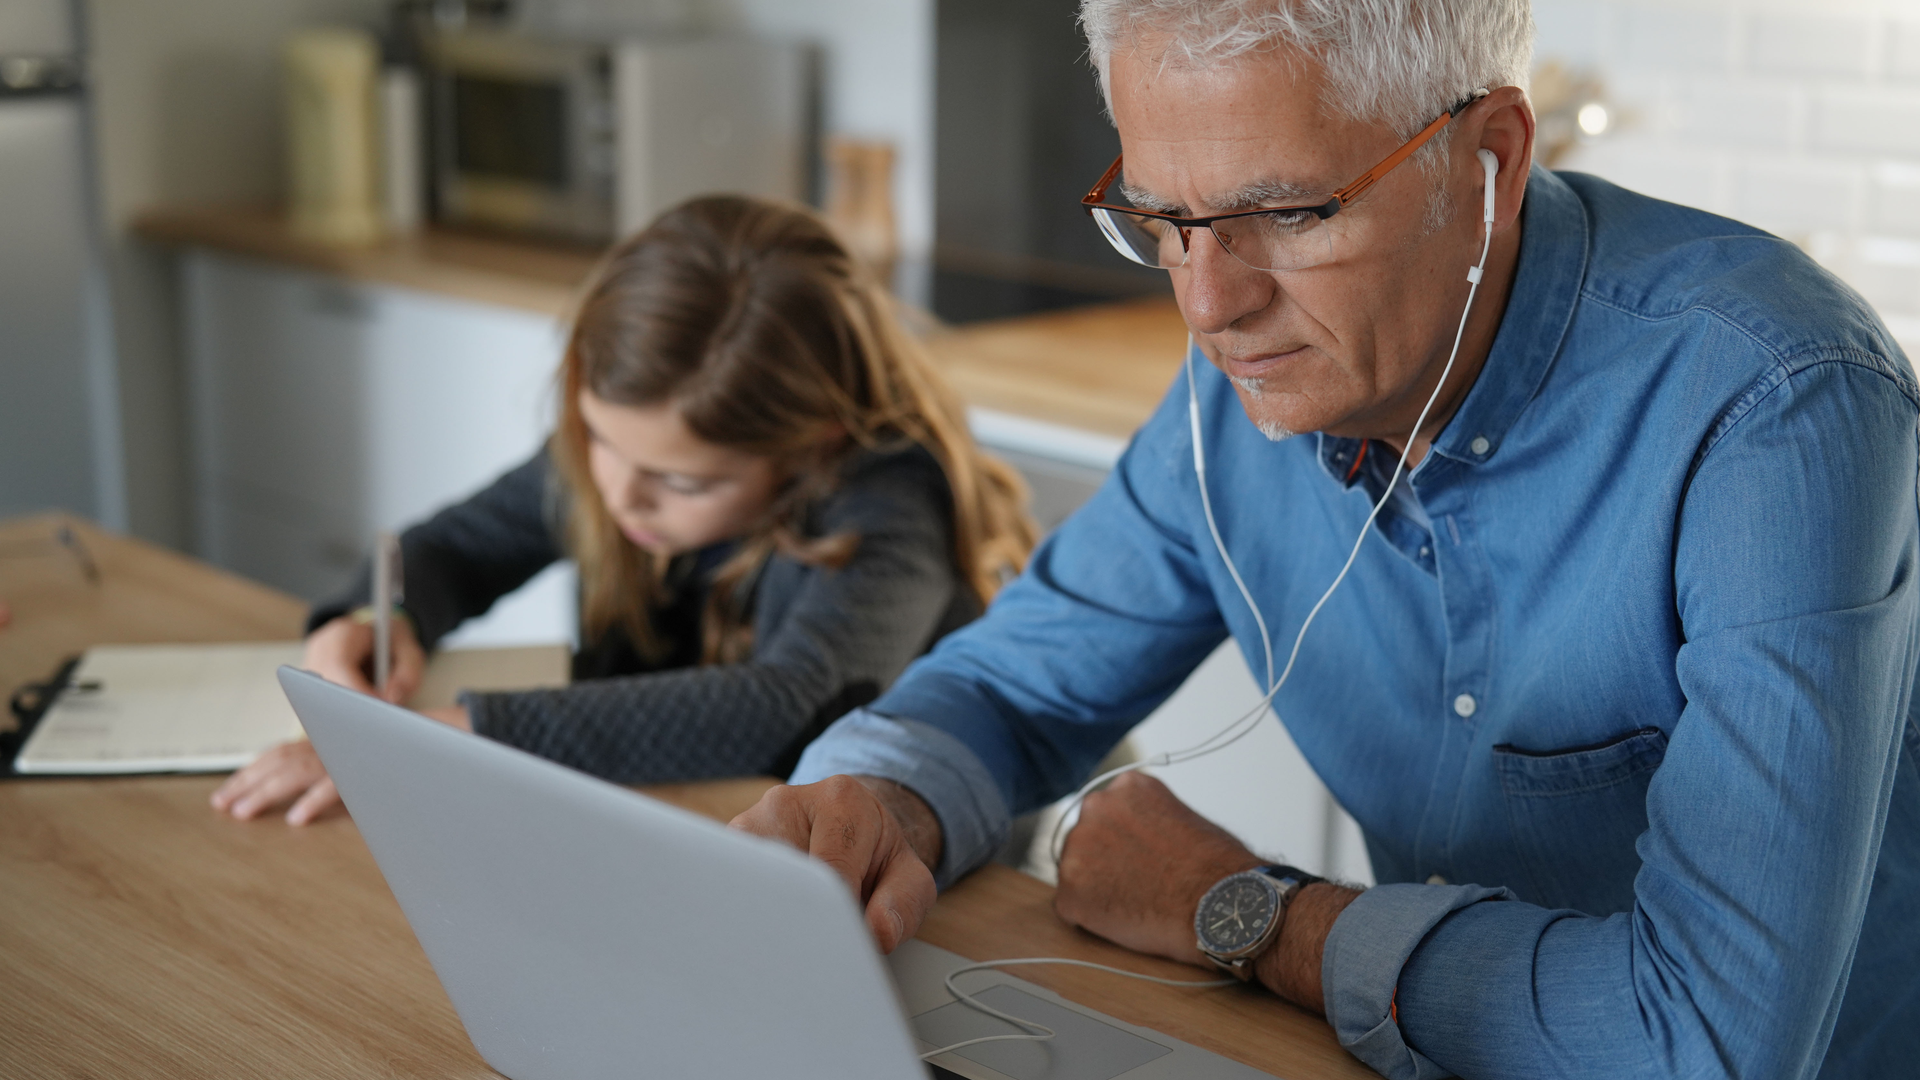 Older man with headphones looking at a computer with a young girl writing in the background